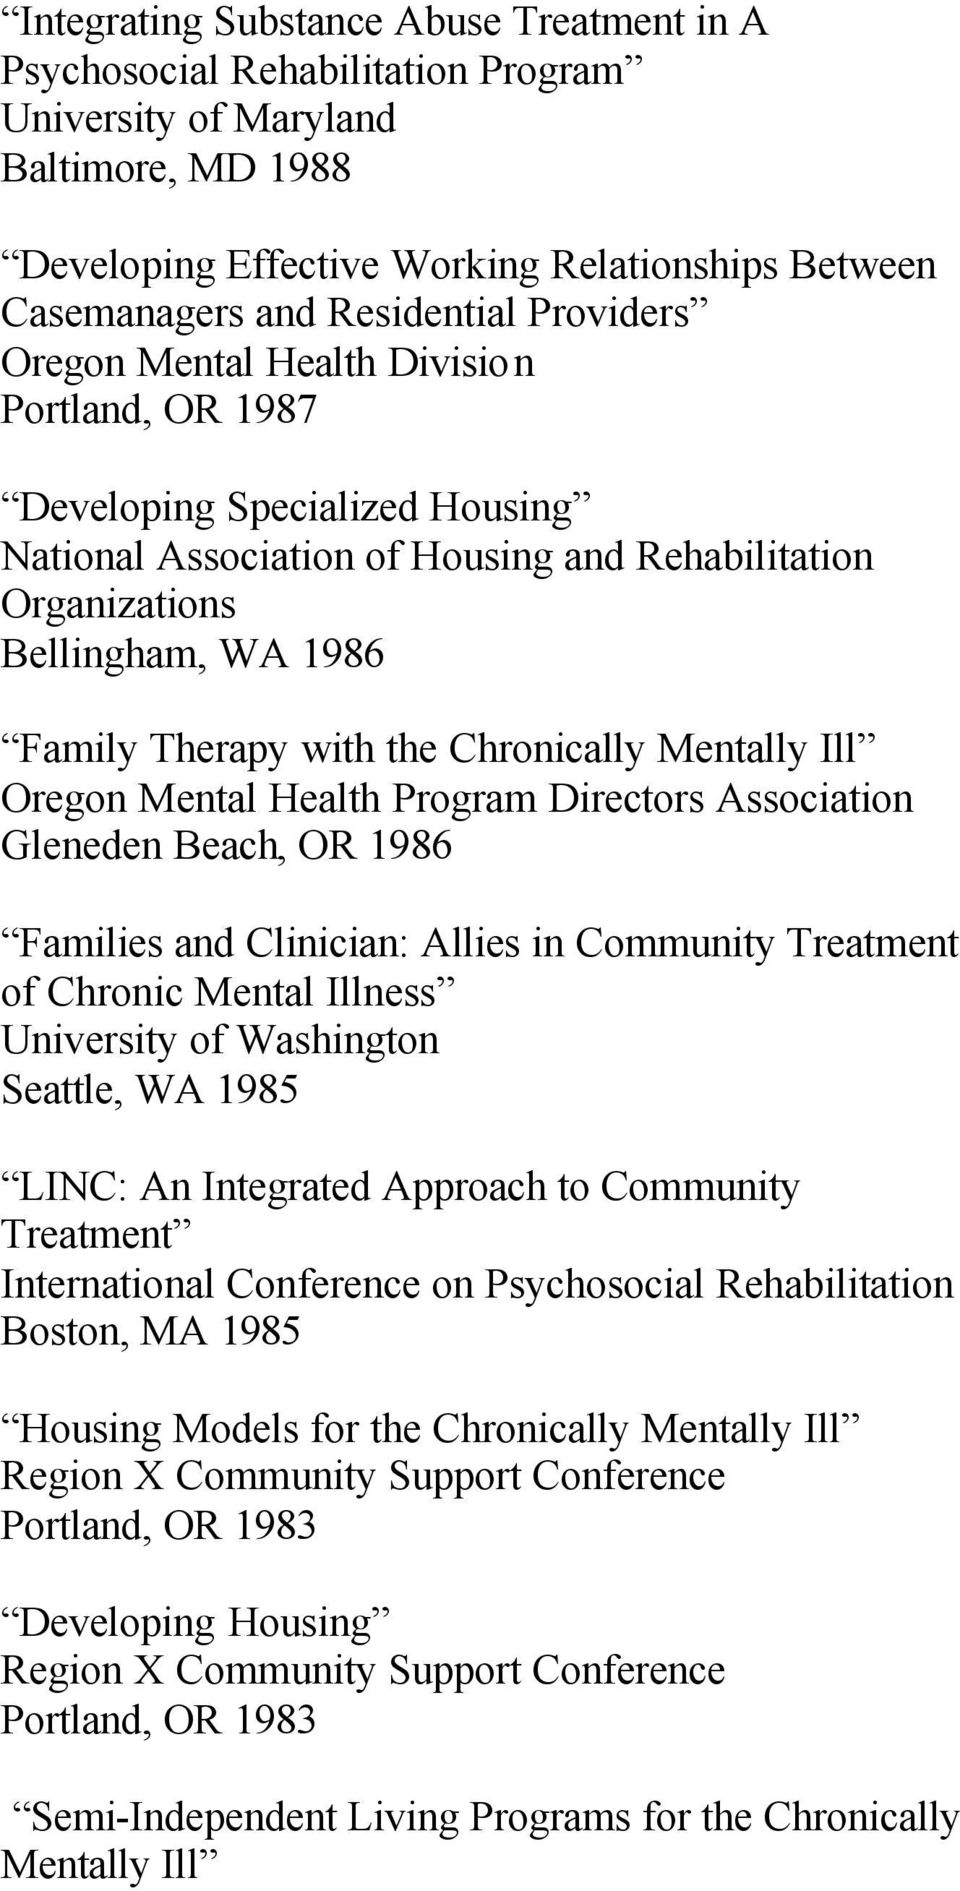 Chronically Mentally Ill Oregon Mental Health Program Directors Association Gleneden Beach, OR 1986 Families and Clinician: Allies in Community Treatment of Chronic Mental Illness University of